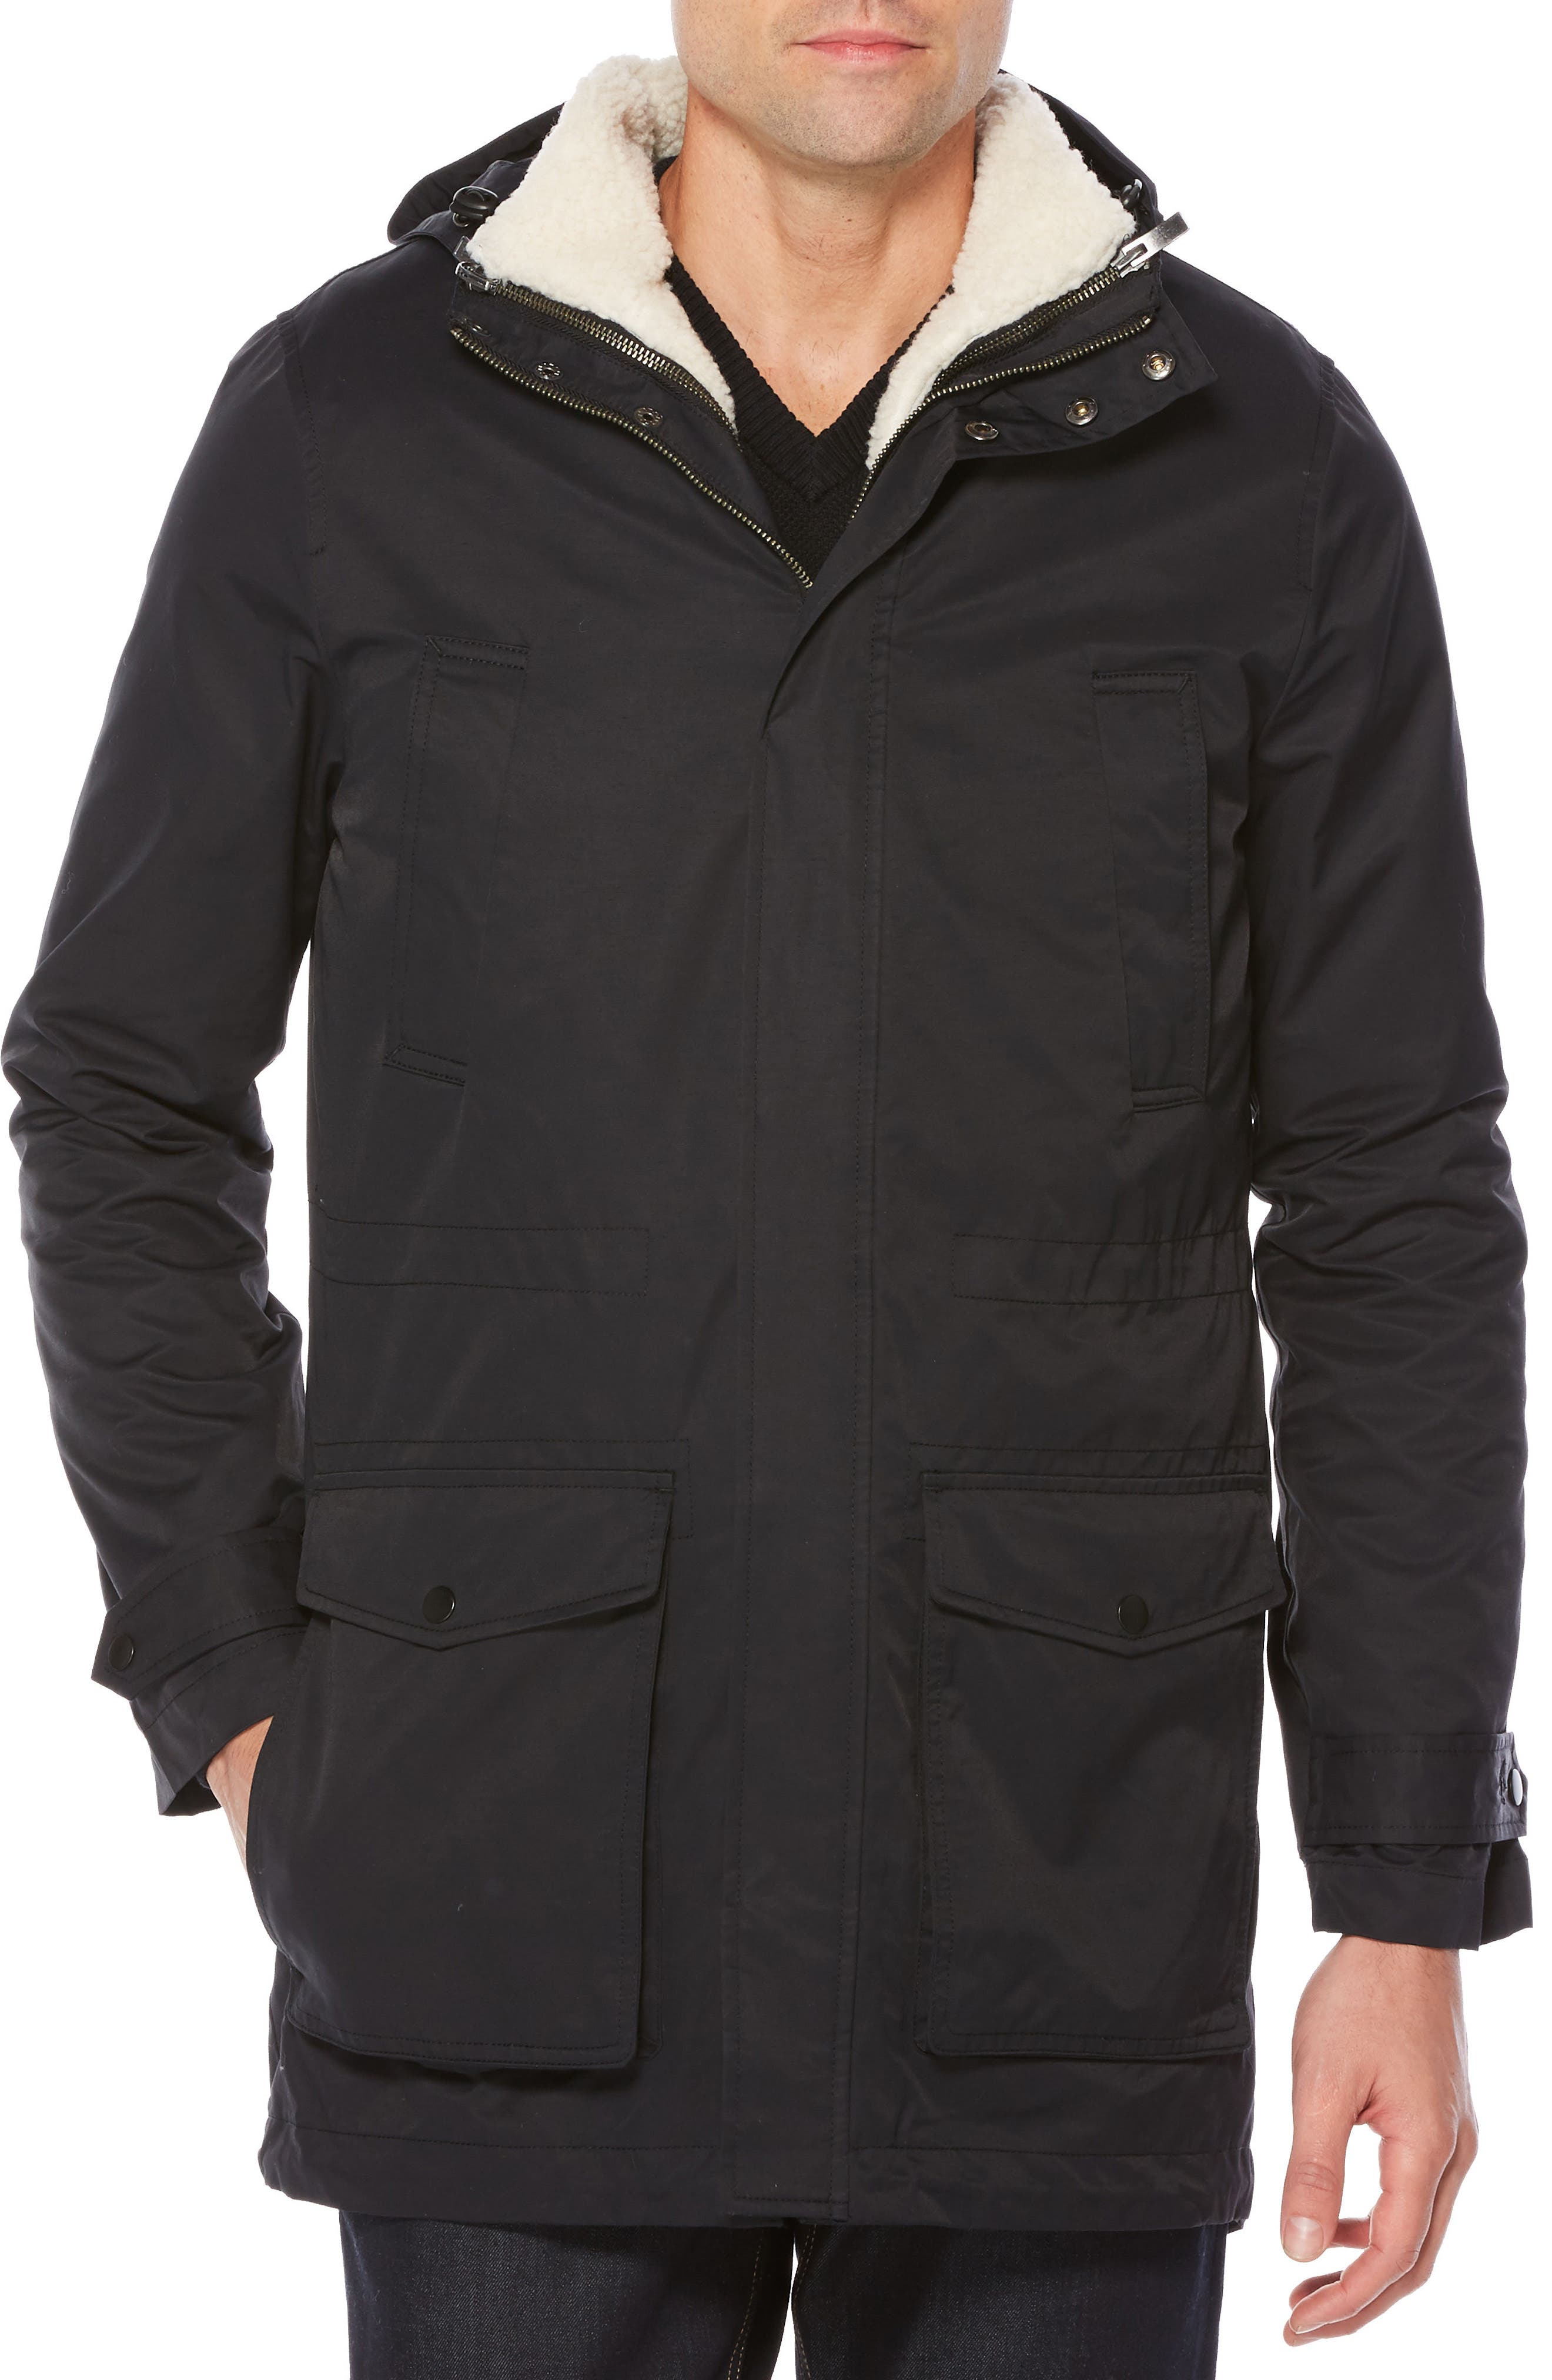 4-in-1 Water Resistant Jacket,                         Main,                         color,